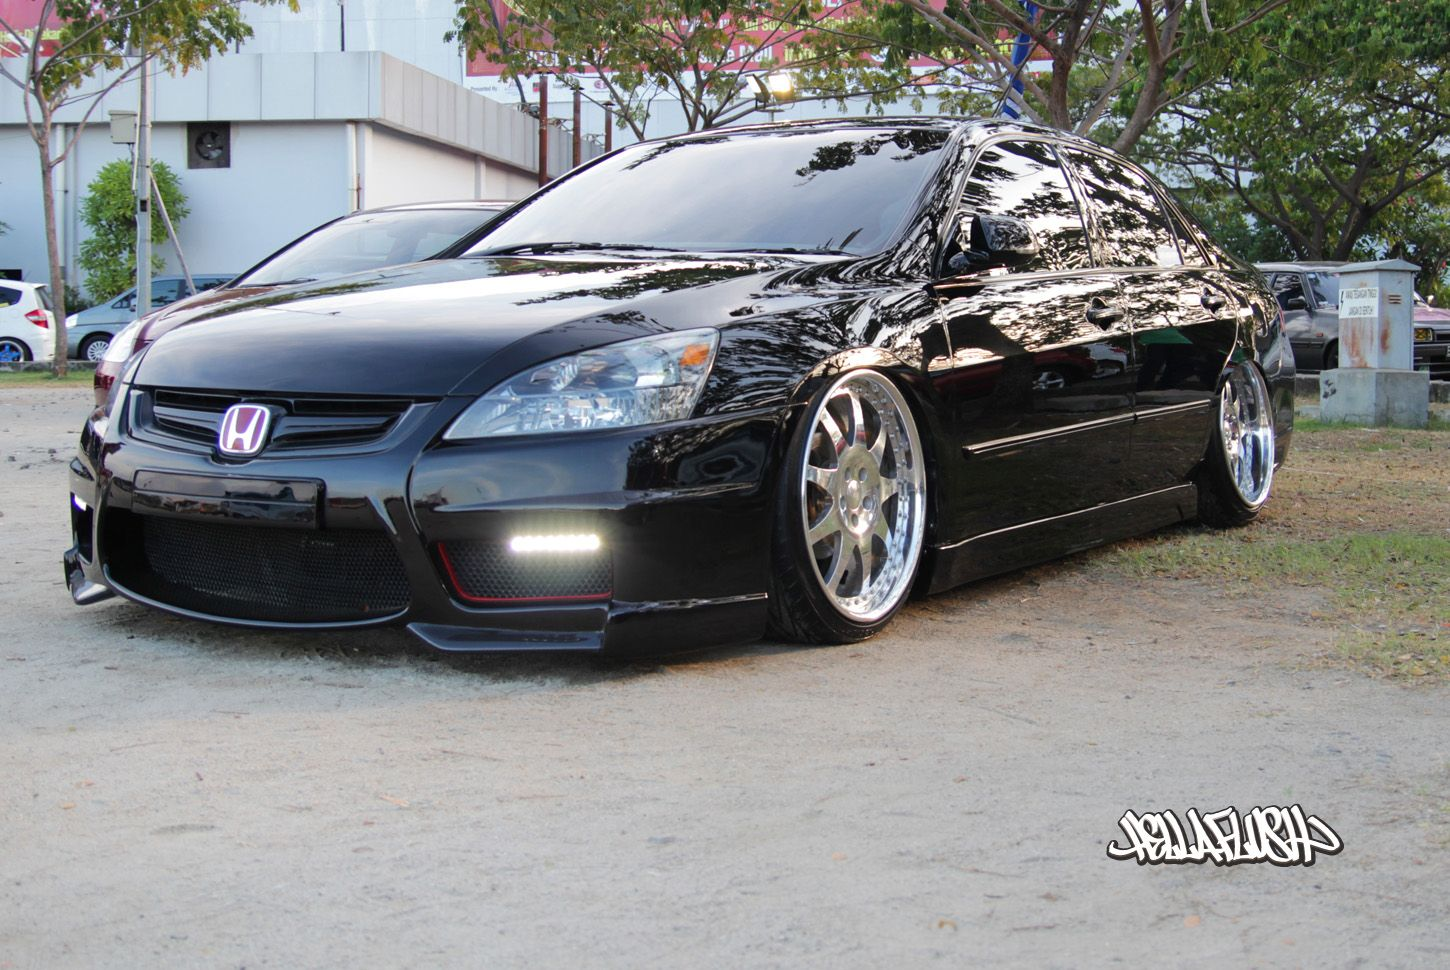 21 best project v6 accord images on pinterest | cars, honda cars